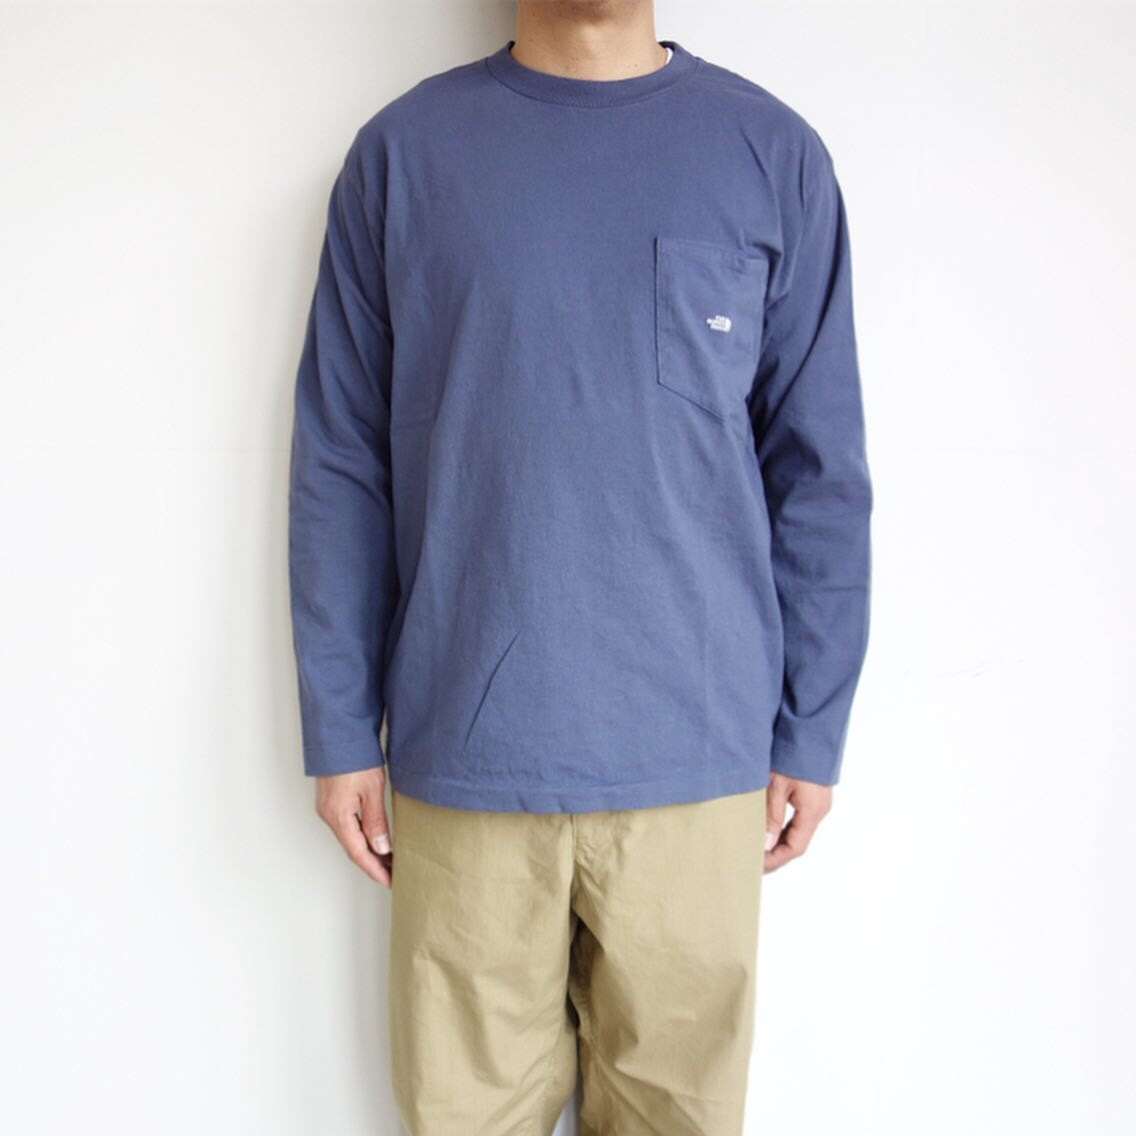 THE NORTH FACE PURPLE LABEL : 7oz L/S Pocket Tee_a0234452_15012619.jpg